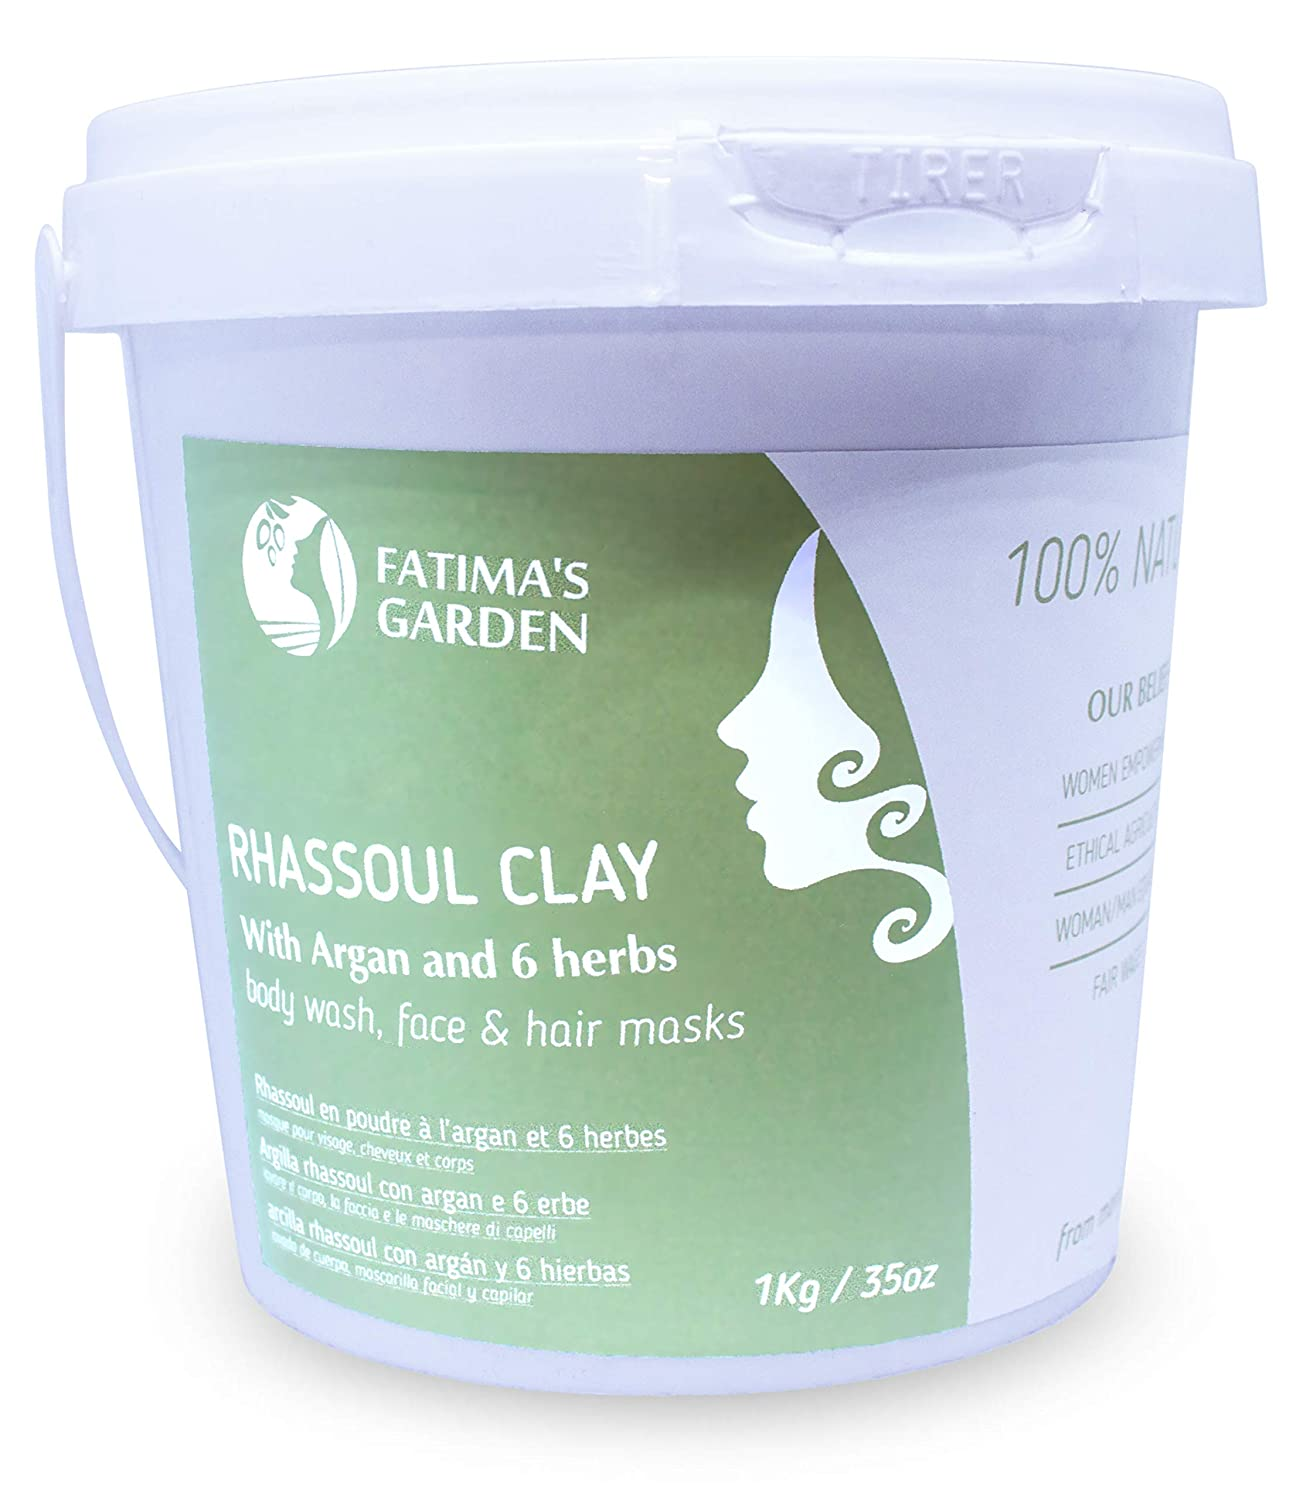 Rhassoul Clay by Fatima's Garden, 100% Natural Moroccan Ghassoul Clay for Face, Hair & Hammam; enriched with Argan and 6 herbs, cleansing & softening properties, Purify skin/hair - 5oz/1kgr